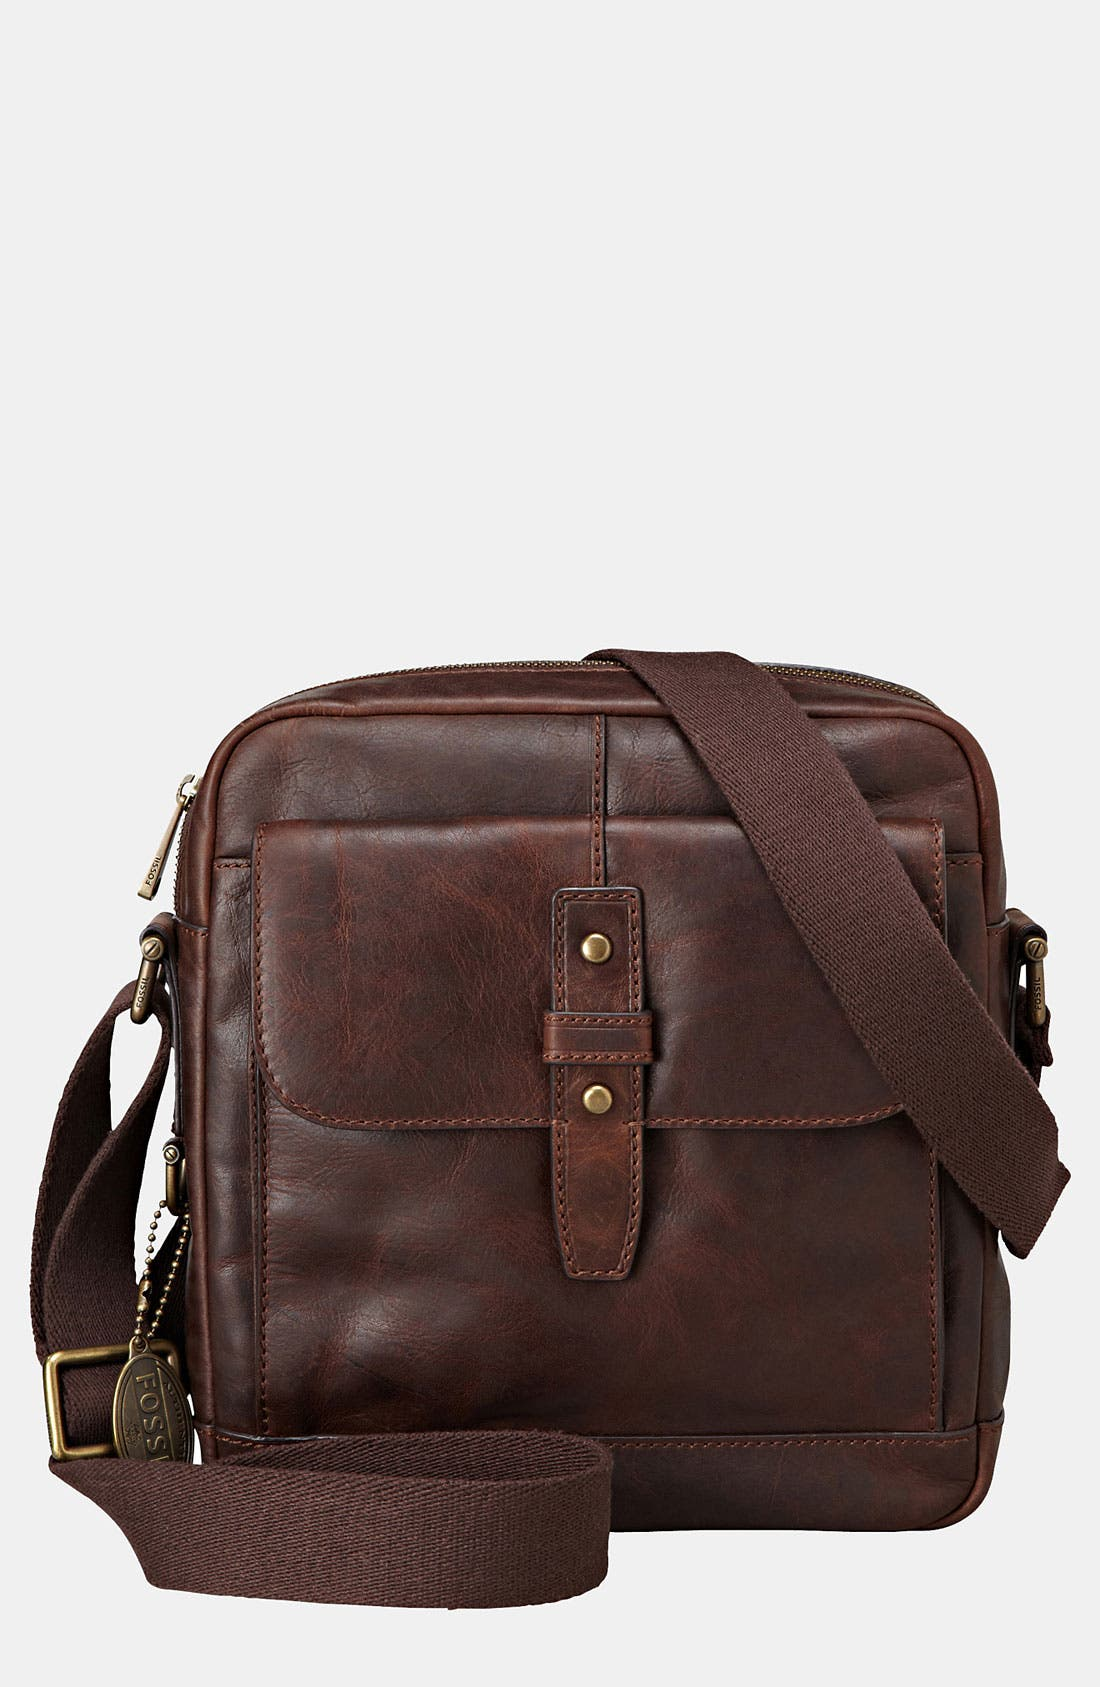 Main Image - Fossil 'Dillon' City Bag